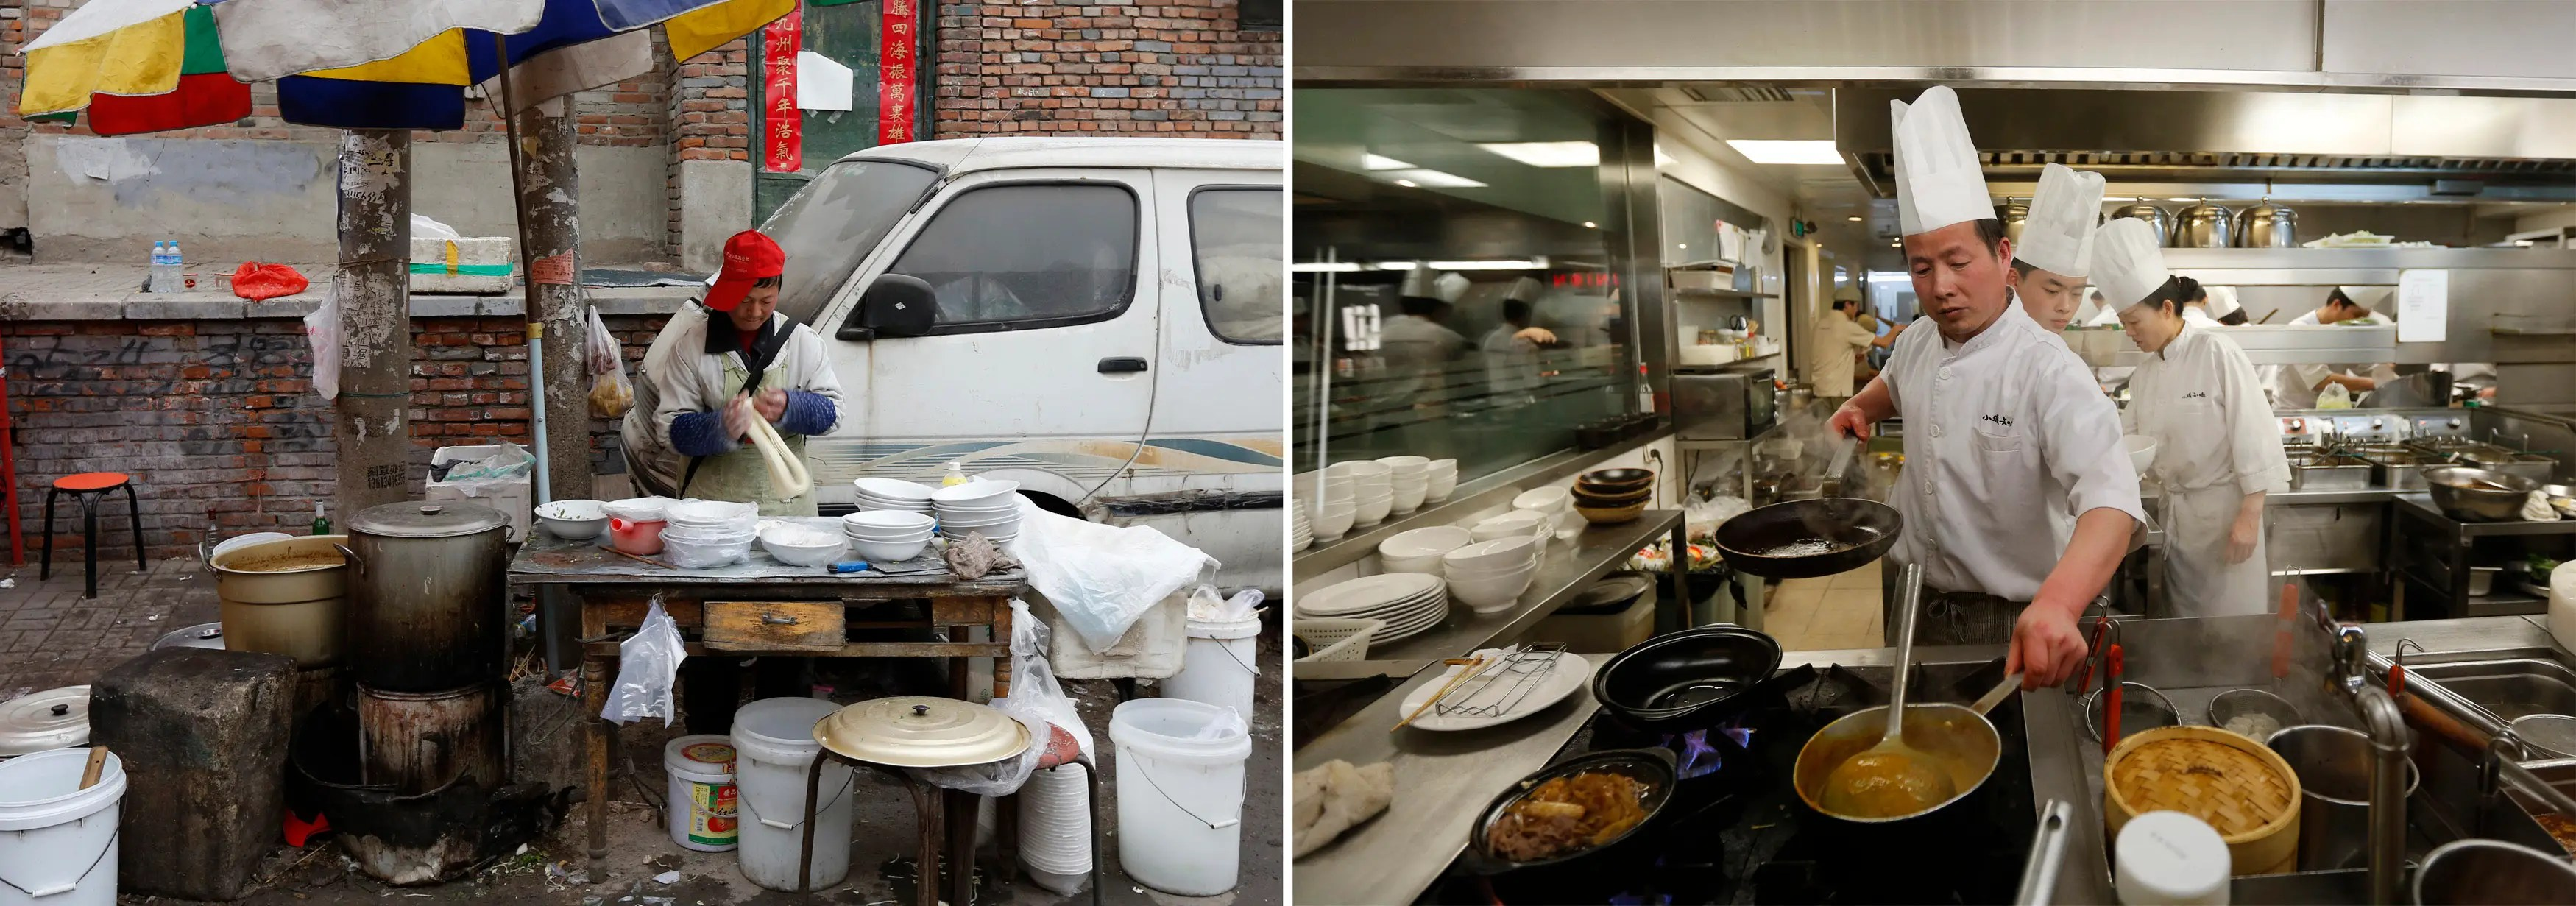 (L) A man makes noodles with dough at his makeshift restaurant in a half-destroyed, old residential area and (R) chefs cook a meal at a restaurant in a wealthy district in Beijing.